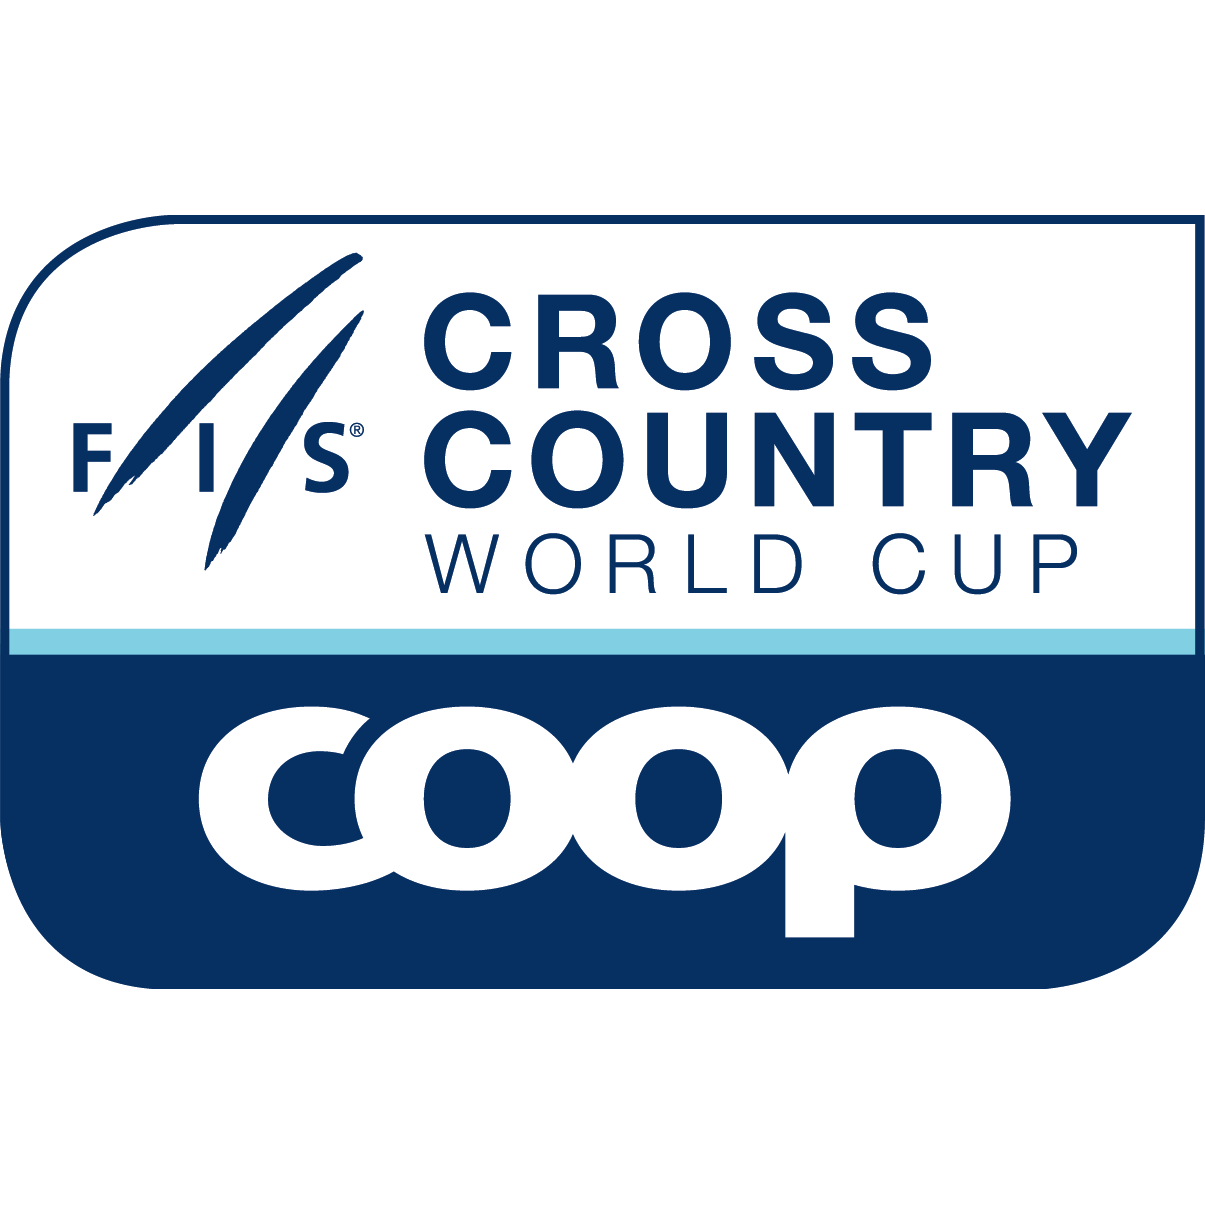 2015 FIS Cross Country World Cup